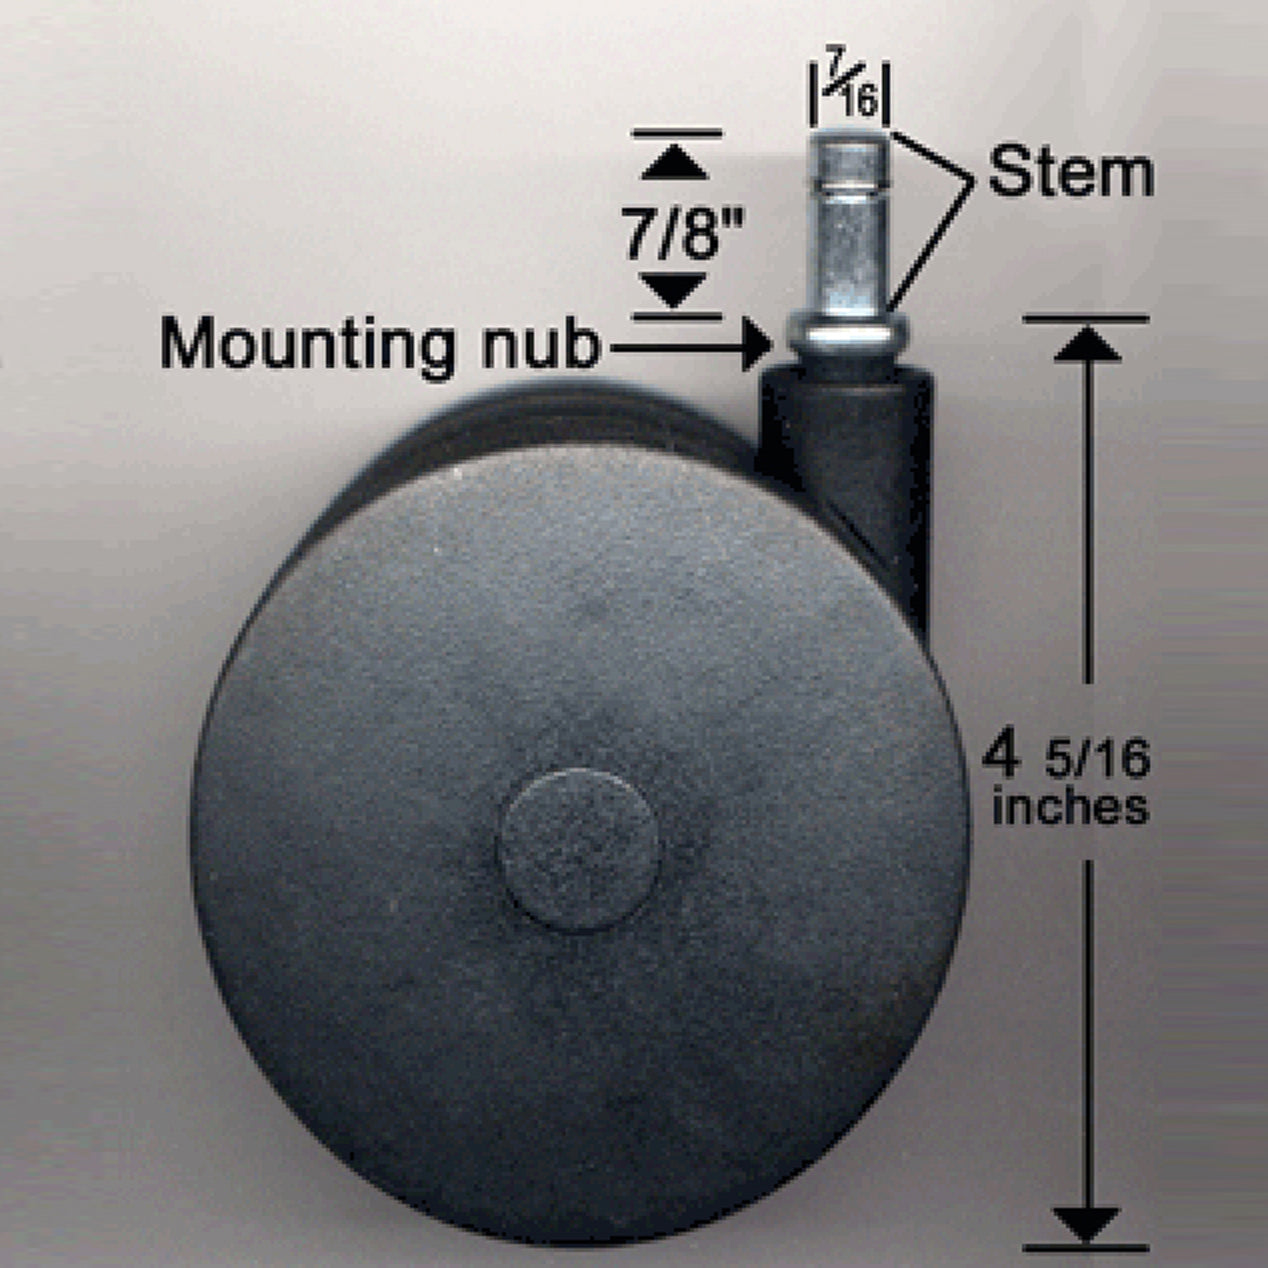 Photo shows Miracle Caster with measurements.